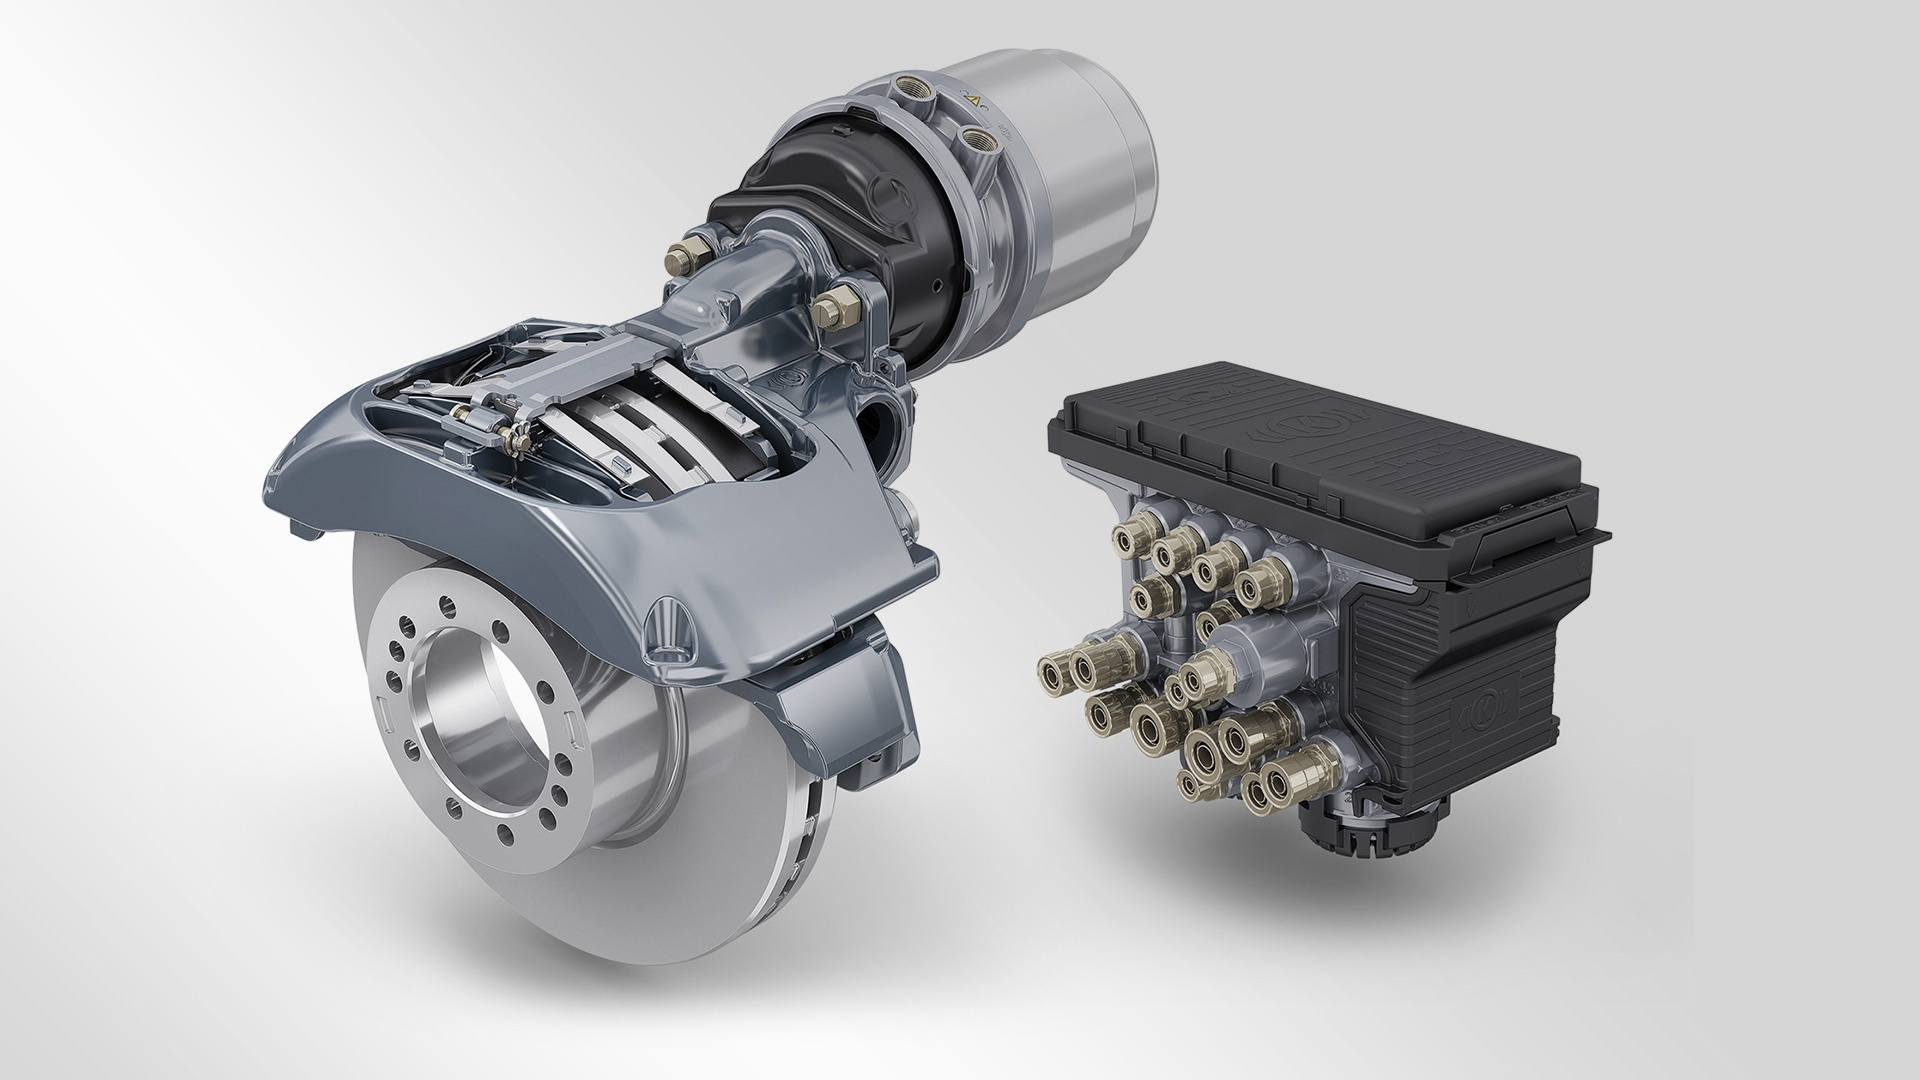 Knorr Bremse At The Iaa Augmented Reality Tour Shows Off Latest Bicycle Generator Systems Pedal Power Generators Trailer Technology Group